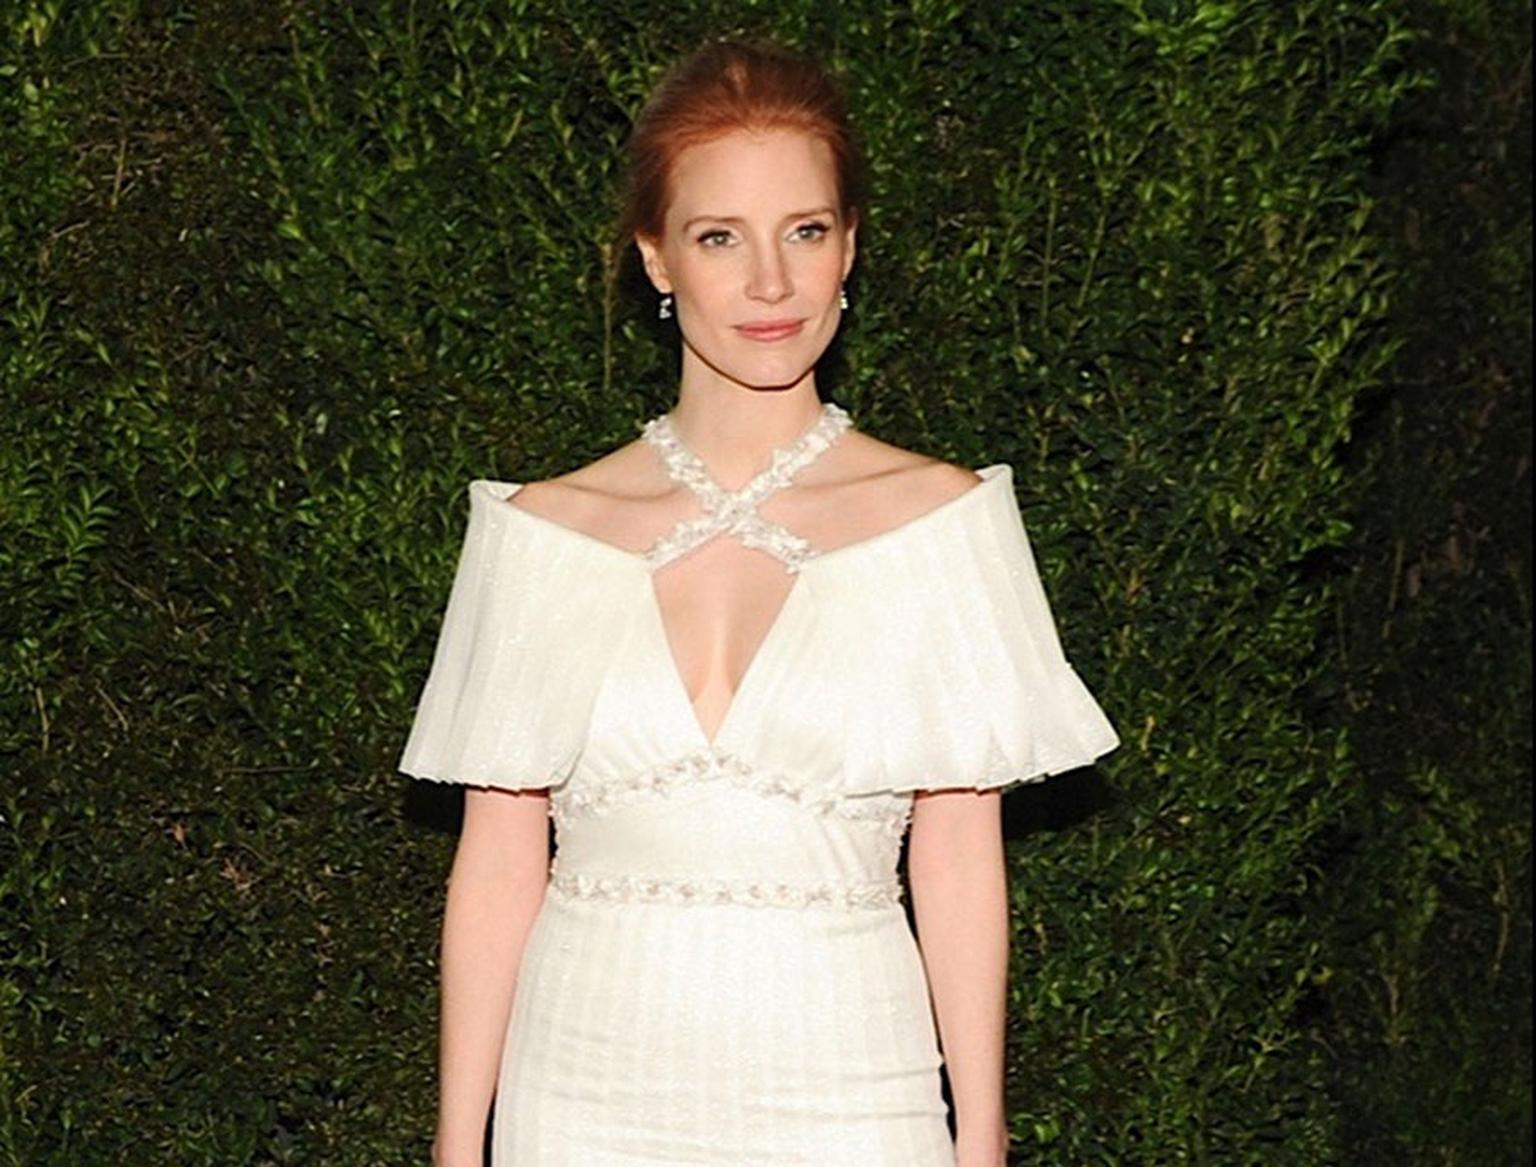 Jessica-Chastain-Chanel-and-Charles-Finch-Oscars-Dinner-23-fevrier-2013.jpg